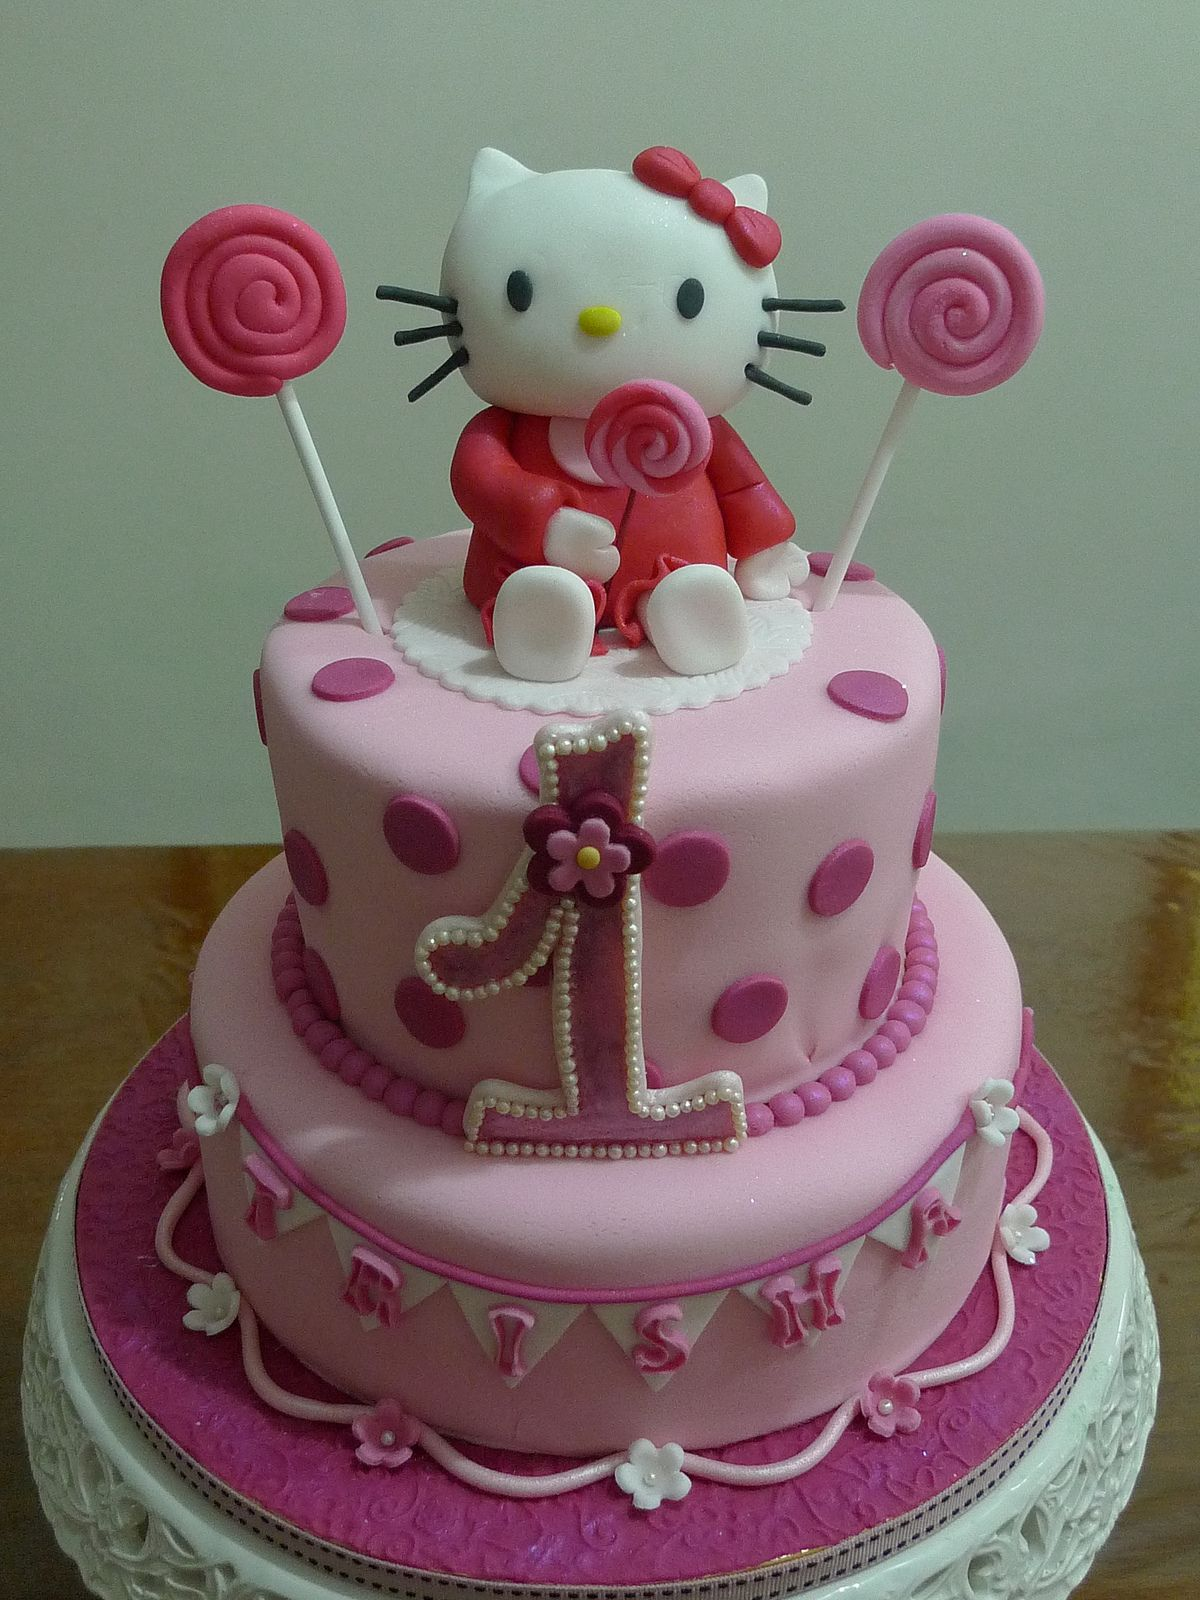 Decor Cake Hello Kitty : Hello Kitty Cake Decorations Images my kitty favs ...